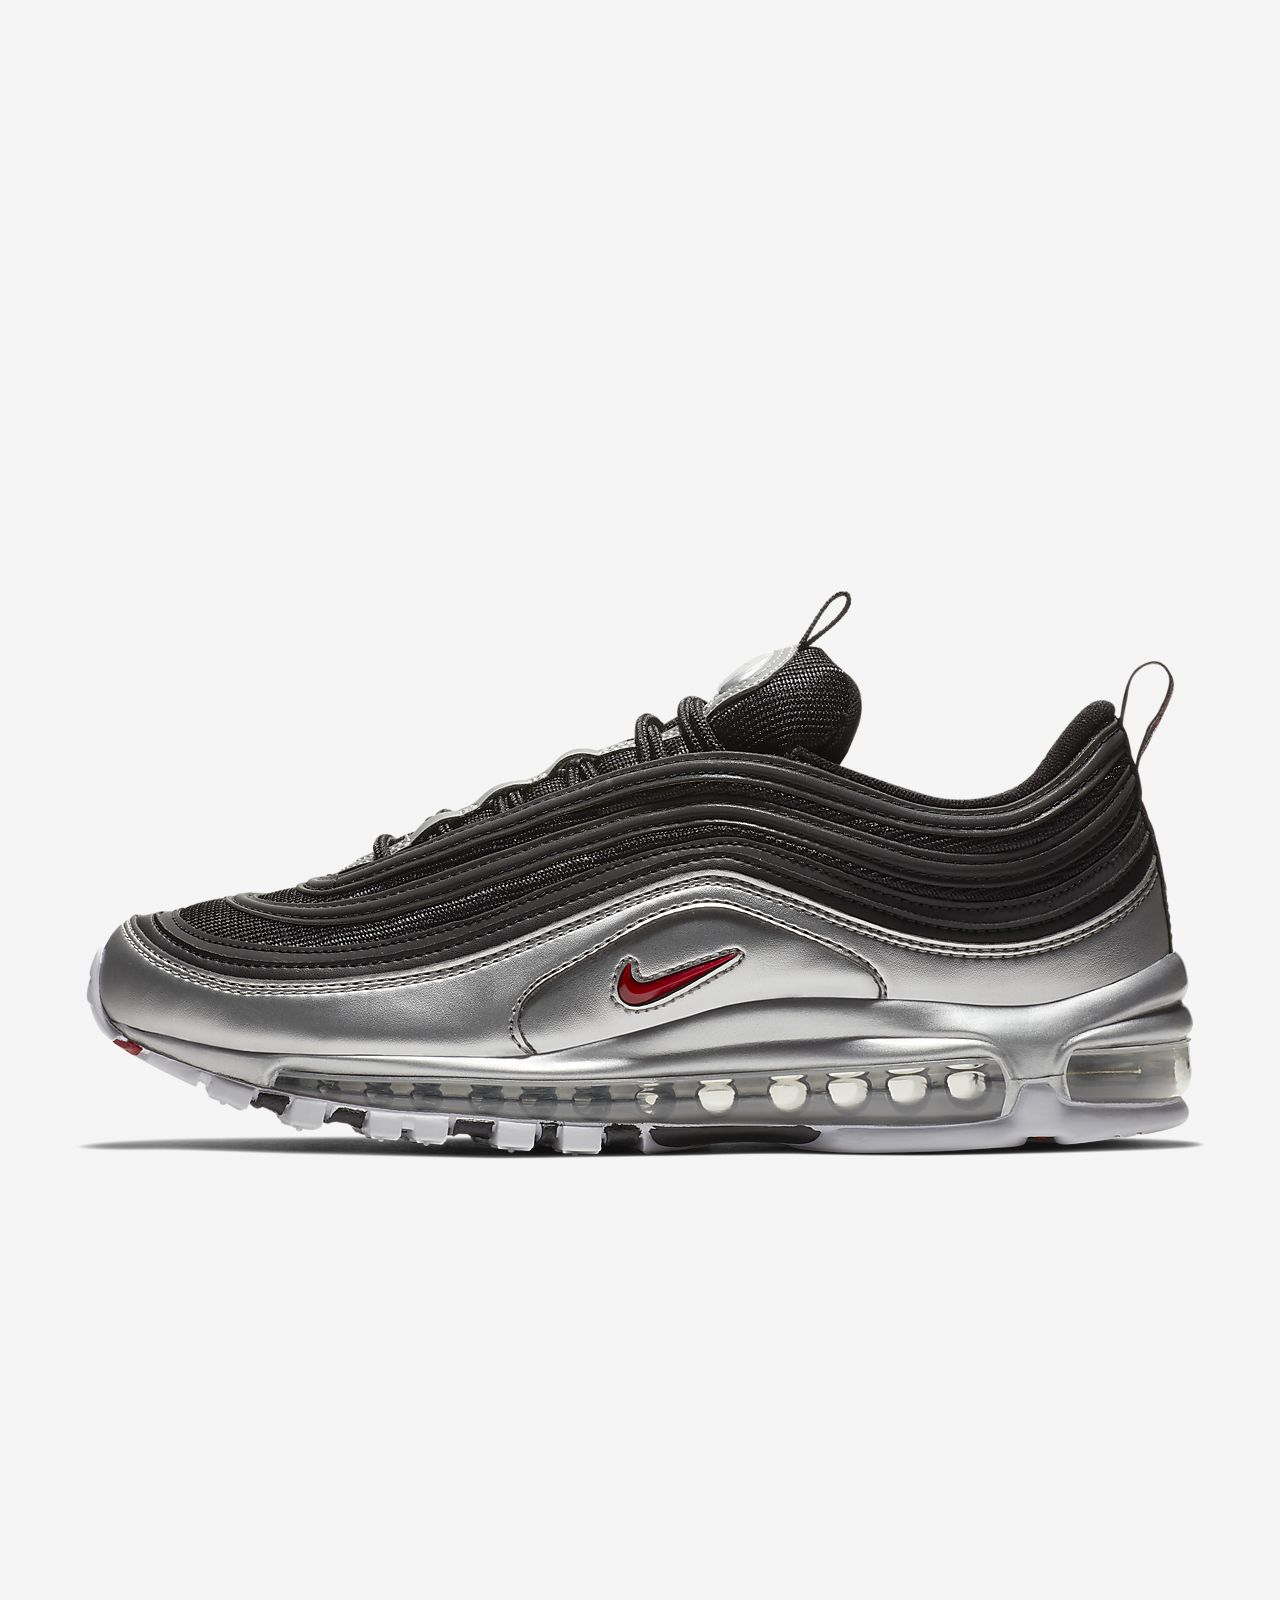 save off 21580 6e9ce ... Nike Air Max 97 QS Men s Shoe